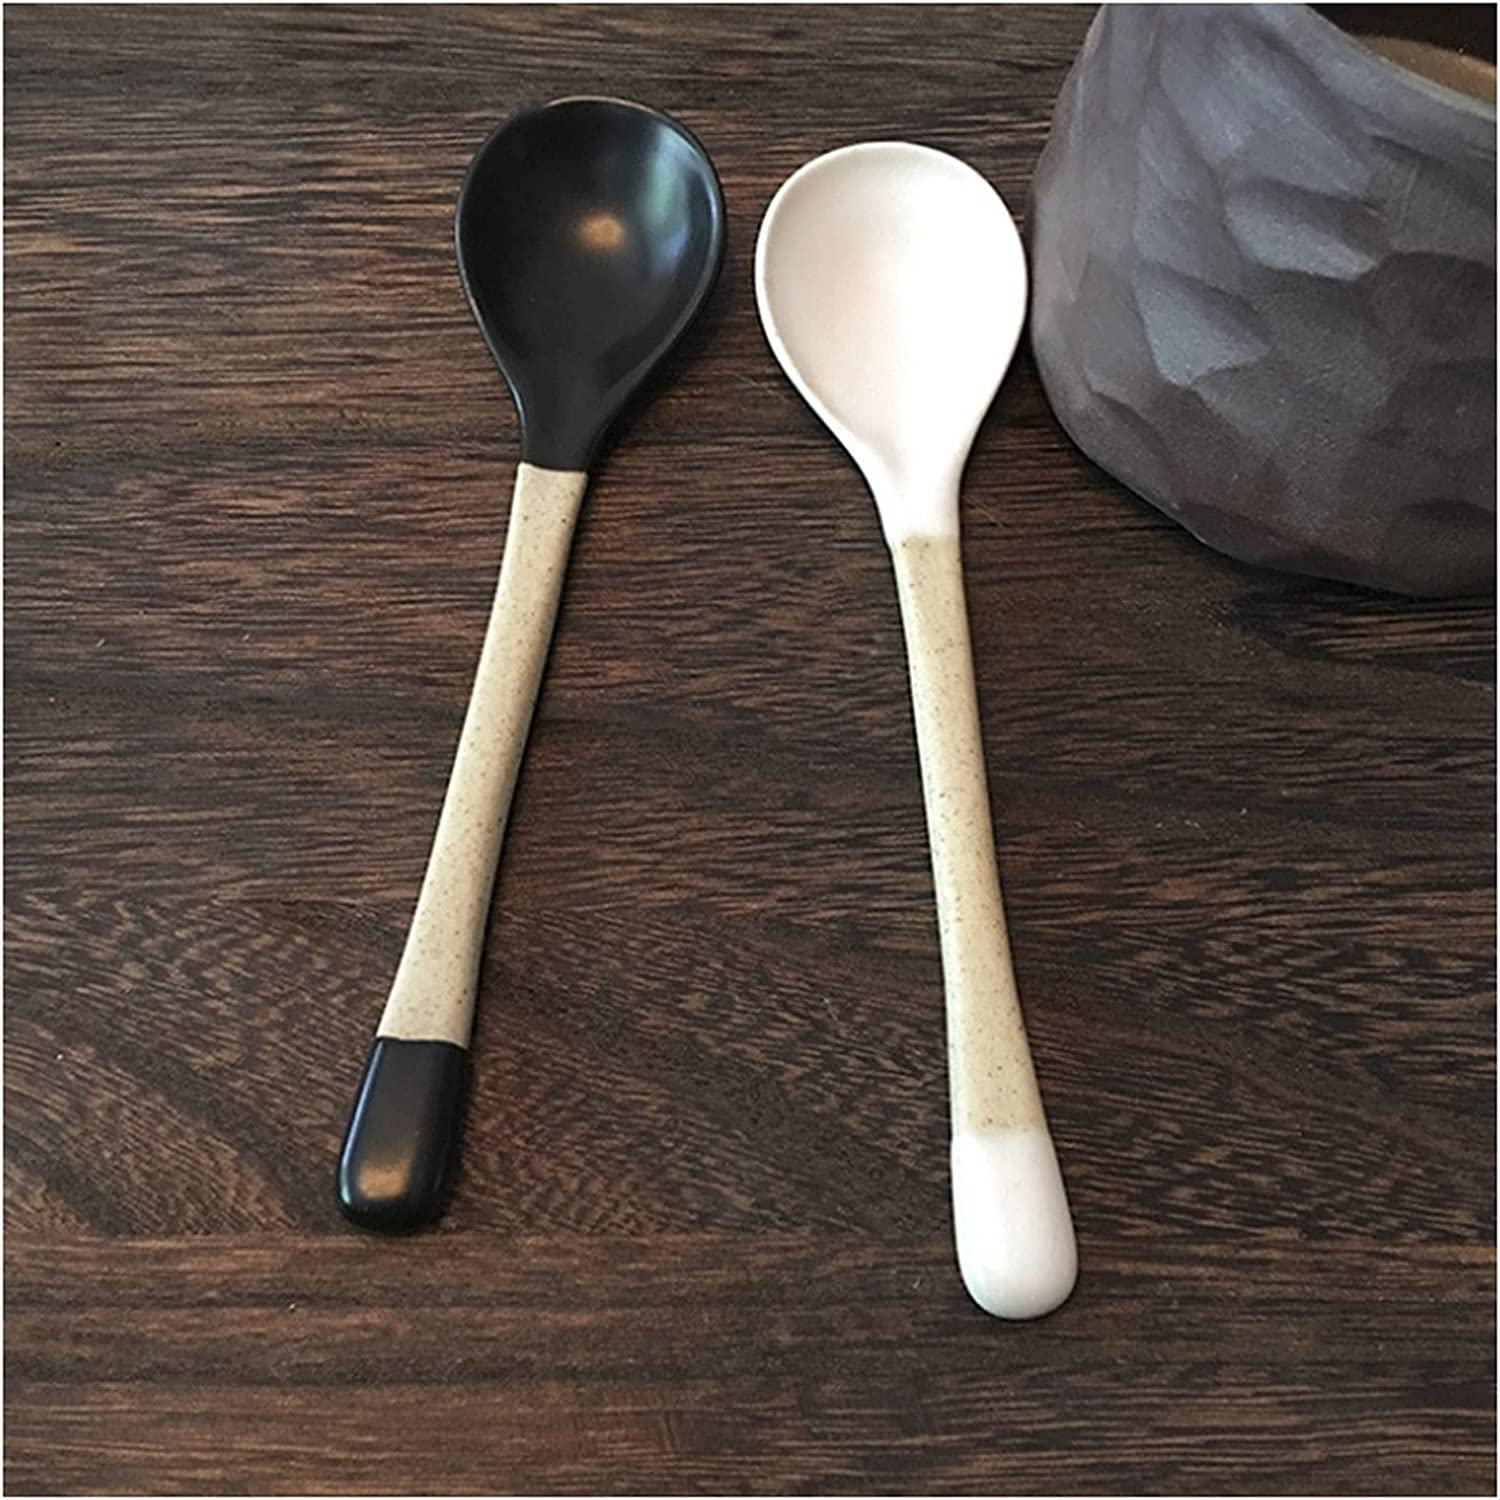 Spoon Two-piece Handmade High material Ceramic Handle Couple Max 65% OFF Coffee Long